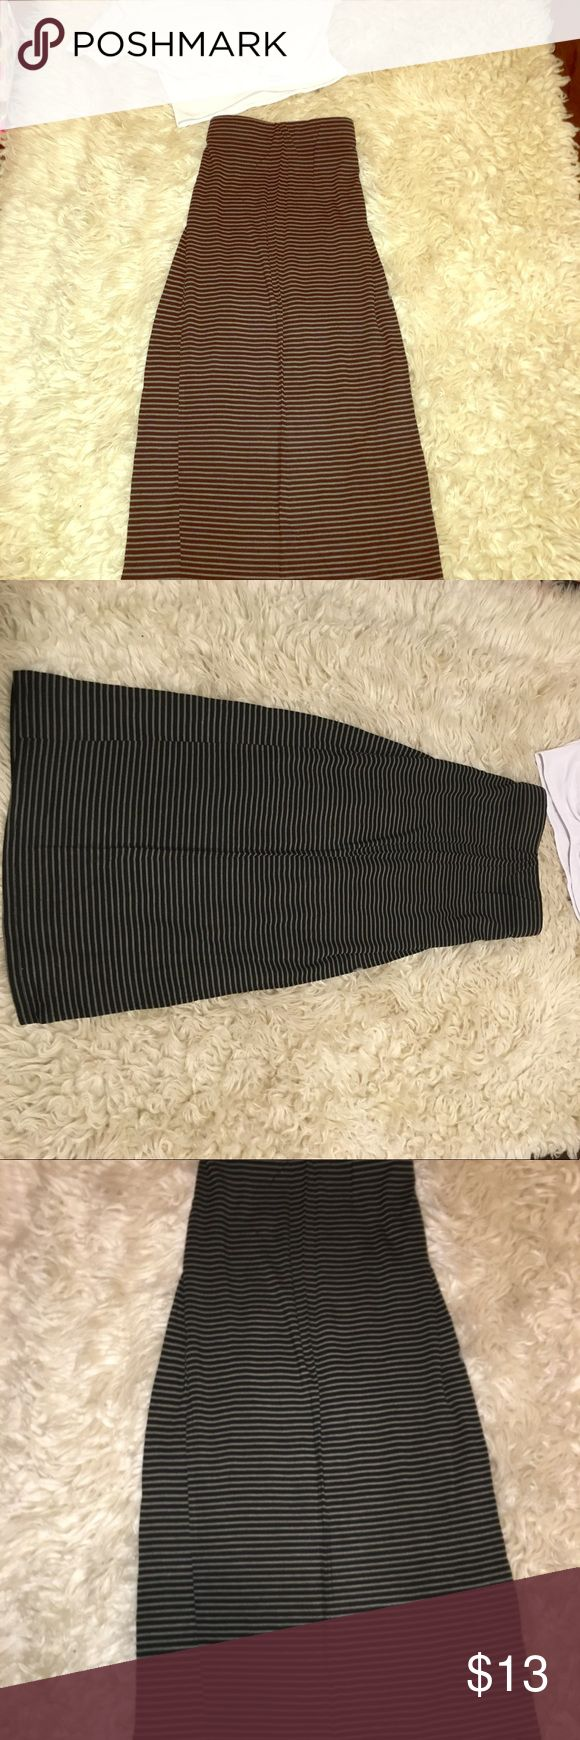 Long maxi skirt Stripped maxi skirt comes down to above your ankles if you wear it around your waist , and below your knees if you wear it as a high waist skirt. Dress it up or dress it down. Still in good condition size Small can fit a medium Skirts Maxi